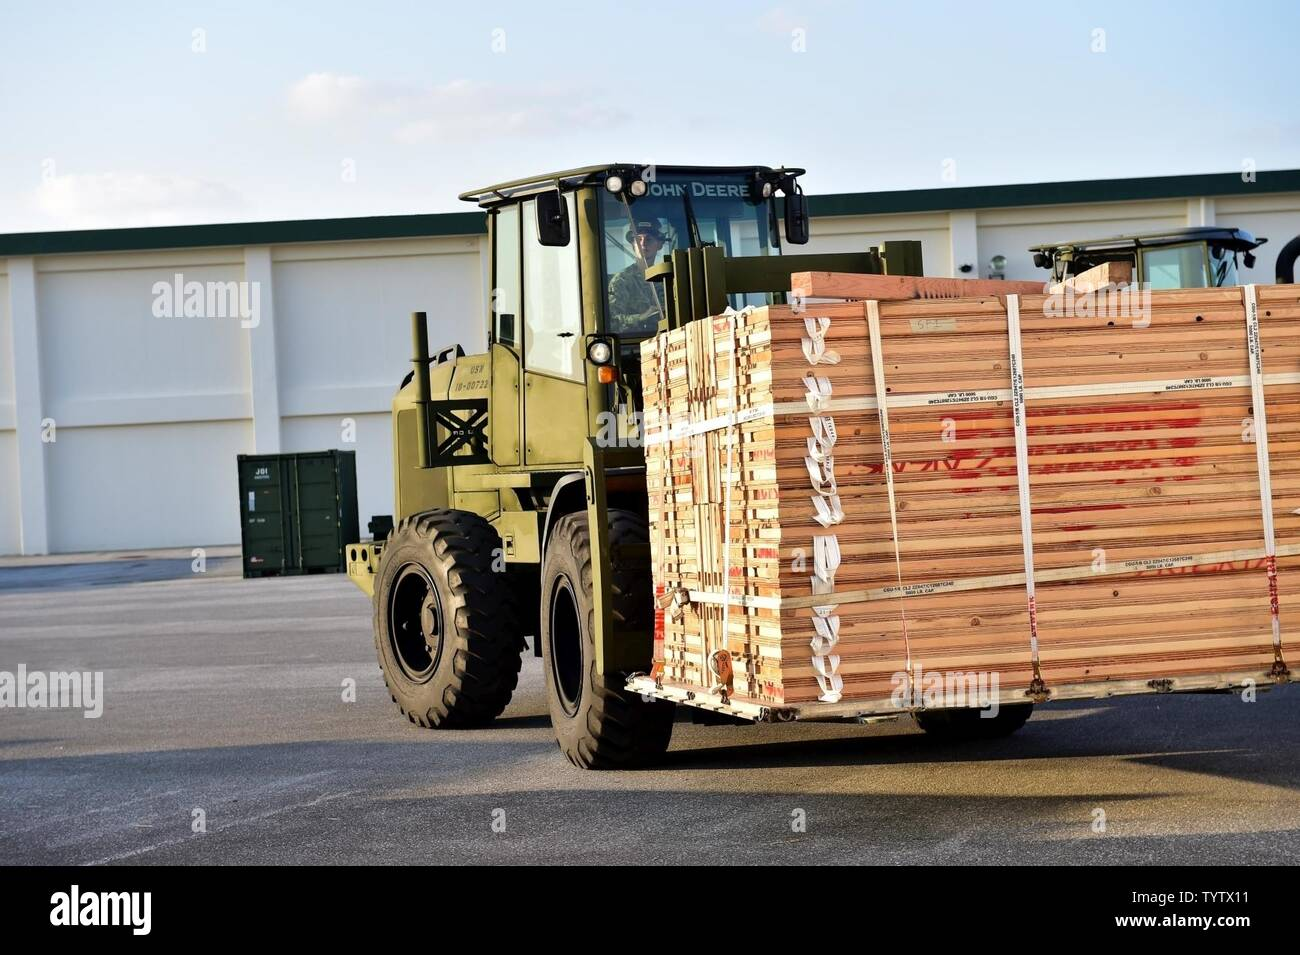 OKINAWA, Japan (Nov. 29, 2016) Seaman Miranda Roudabush. assigned to Naval Mobile Construction Battalion (NMCB) 5, drives a forklift while moving pallets of wood outside of a warehouse on Camp Shields during an embark exercise. The exercise tests the commands ability to mobilize within 48 hours to react to different types of contingency operations around the world. NMCB 5 is the forward deployed Western Pacific NMCB ready to support Major Combat Operations, Humanitarian Assistance and Disaster Relief operations, and to provide general engineering and civil support to Navy, Marine Corps and joi - Stock Image